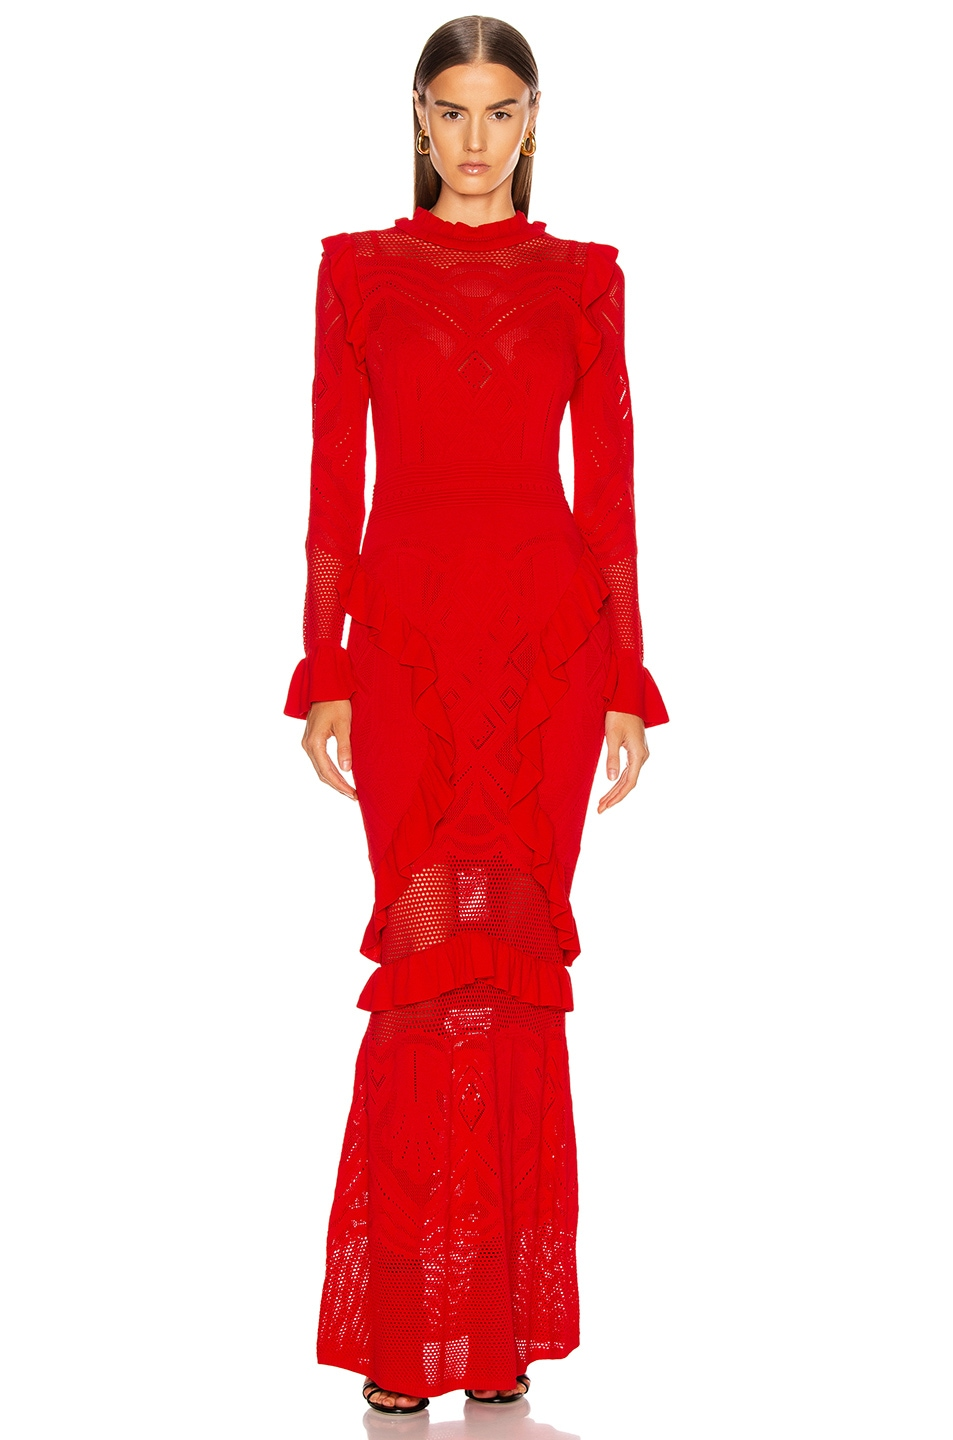 Image 1 of Alexis Ceecee Dress in Red